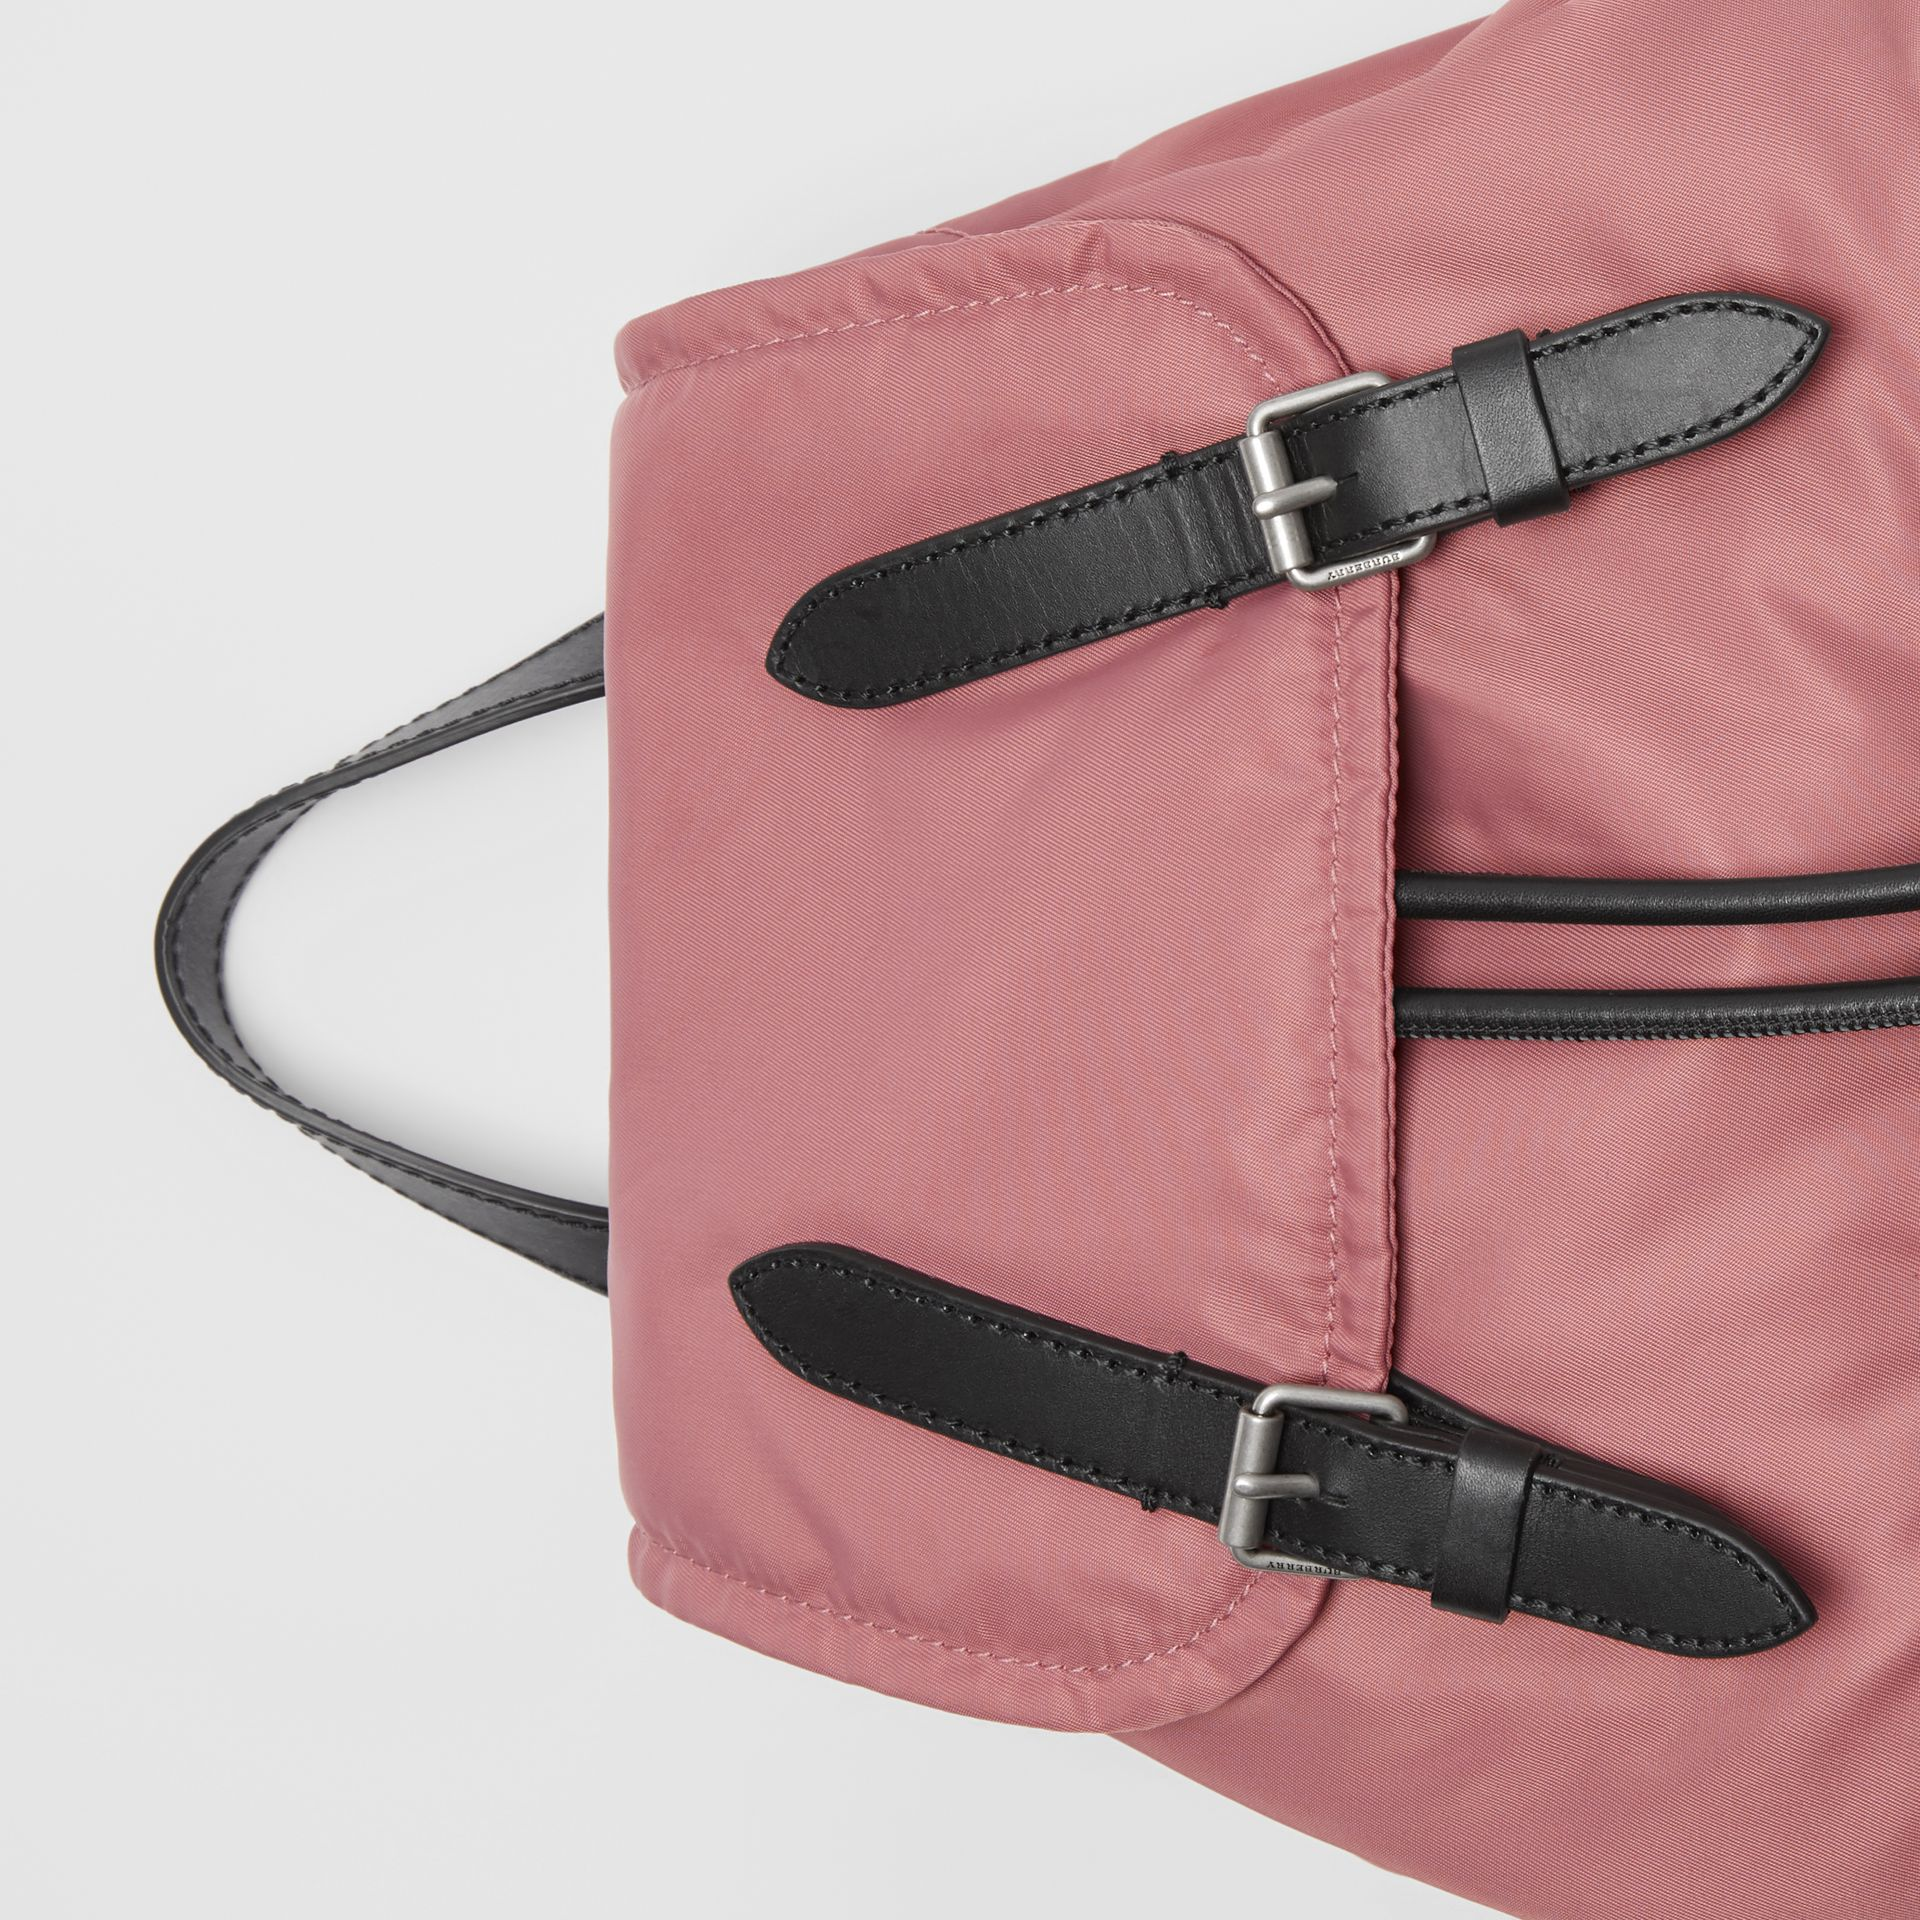 Sac The Rucksack moyen en nylon matelassé et cuir (Rose Mauve) - Femme | Burberry - photo de la galerie 1